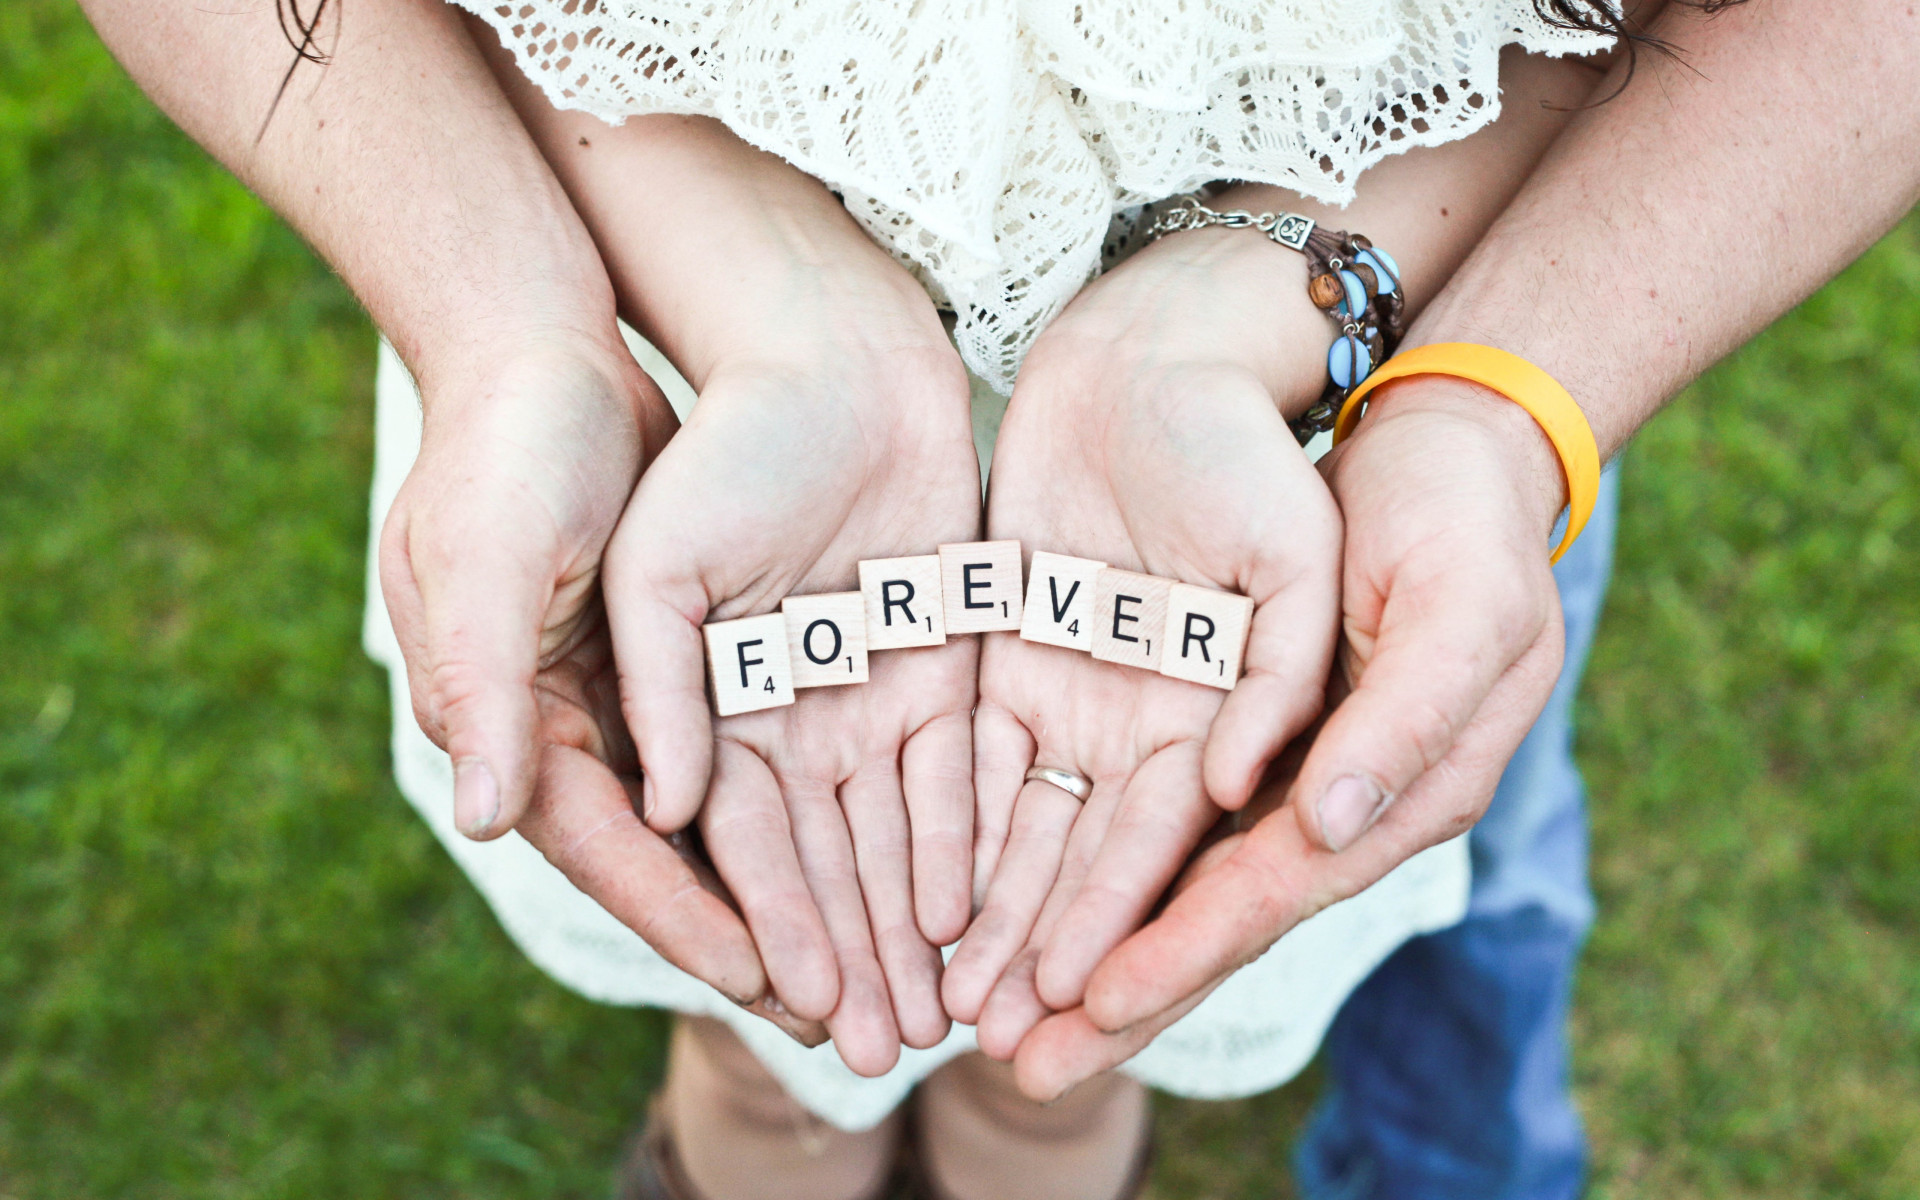 Forever message in their hands | 1920x1200 wallpaper